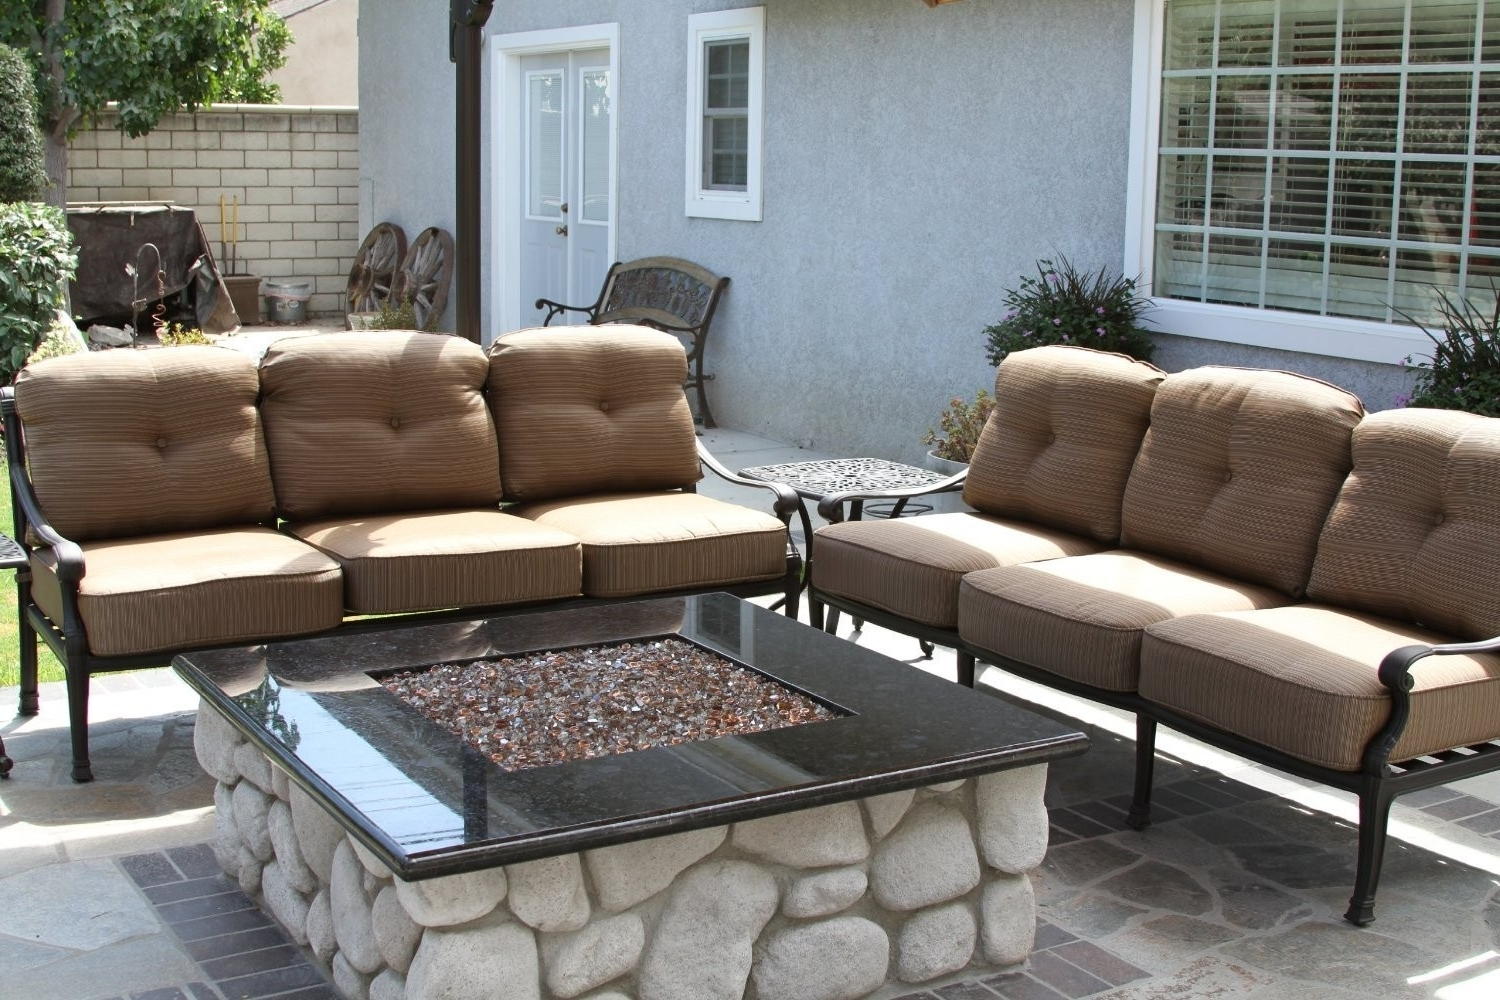 Widely Used Patio Sofas Regarding Sofas & Sectionals – The World Of Patio – Selling Dining Sets (View 11 of 20)